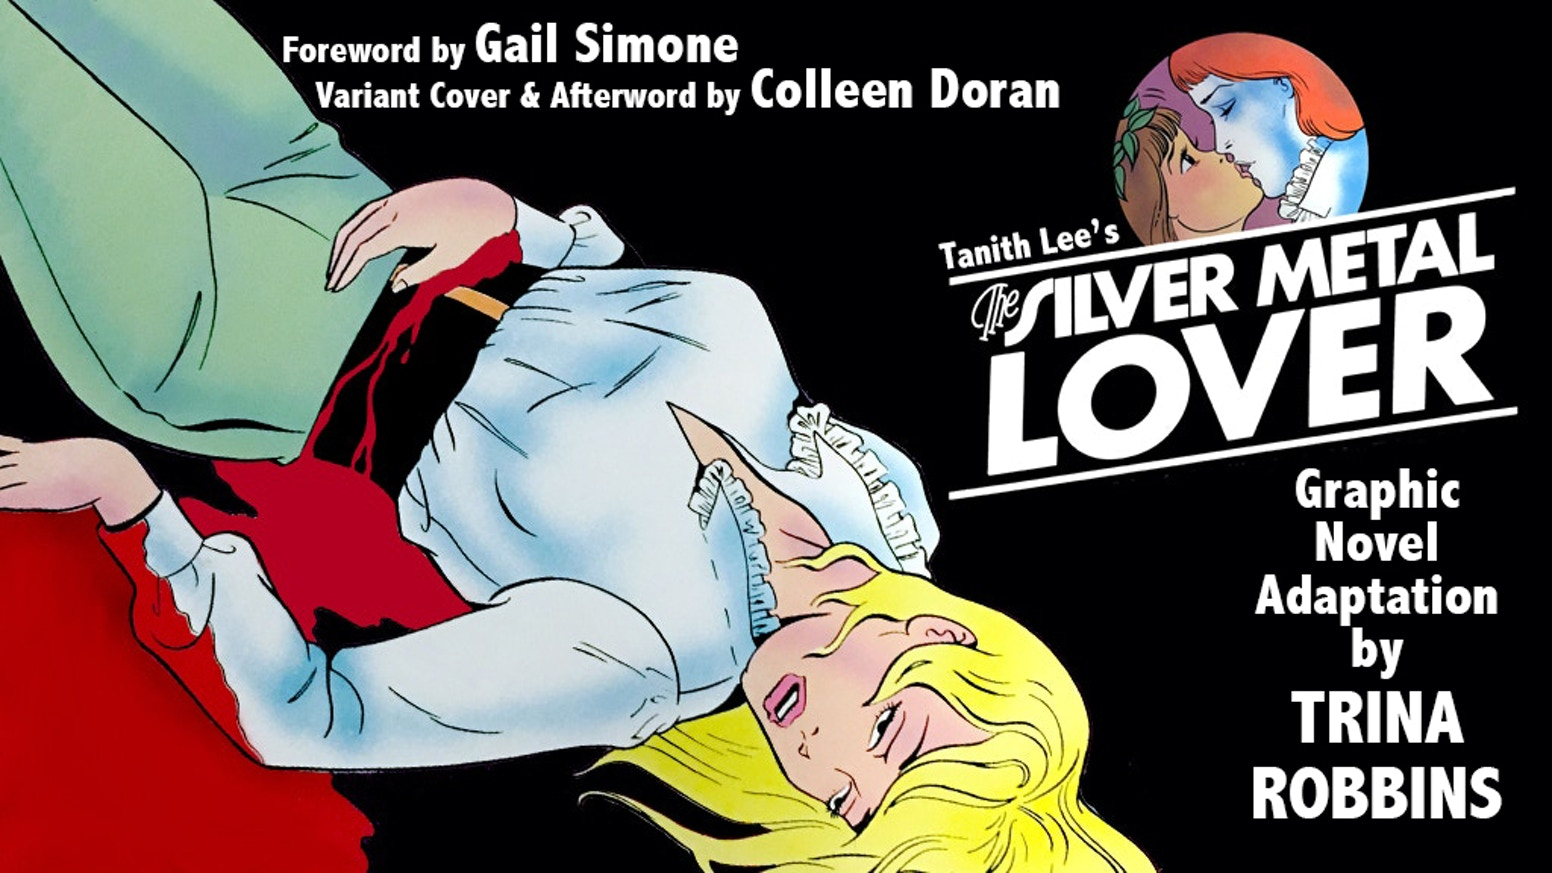 Tanith Lee's Silver Metal Lover by Trina Robbins